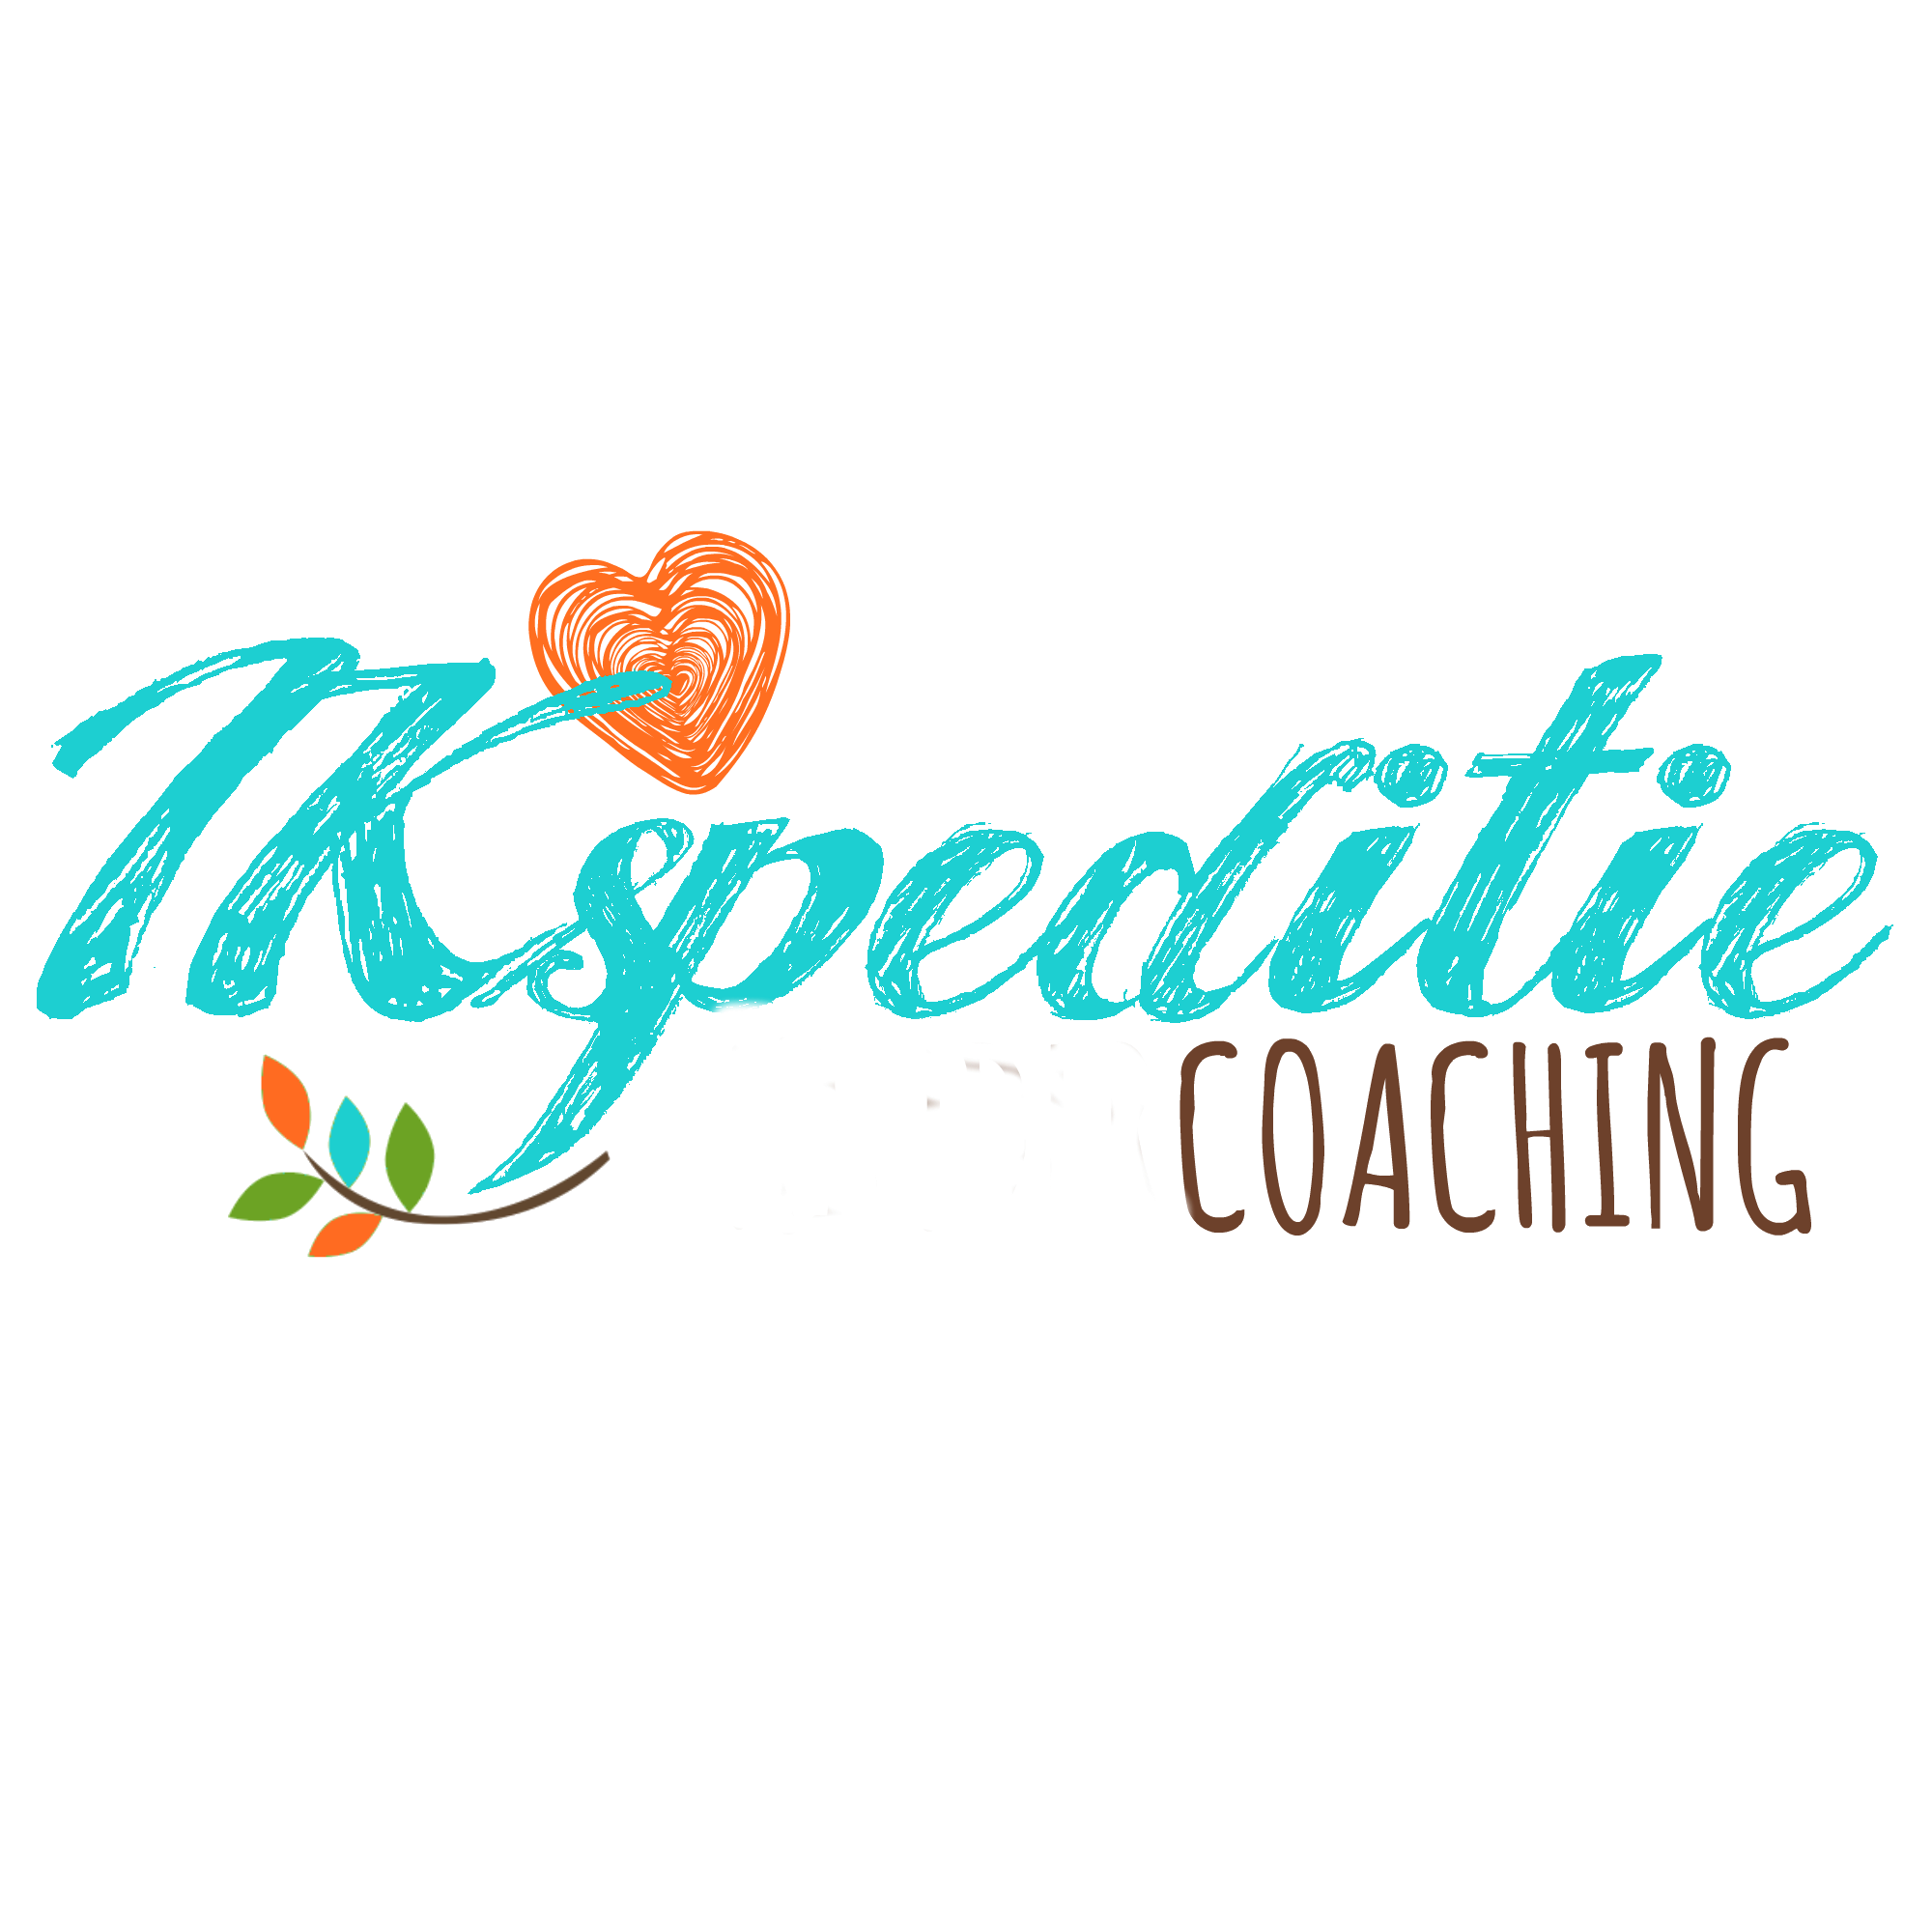 Ikspeditie Coaching